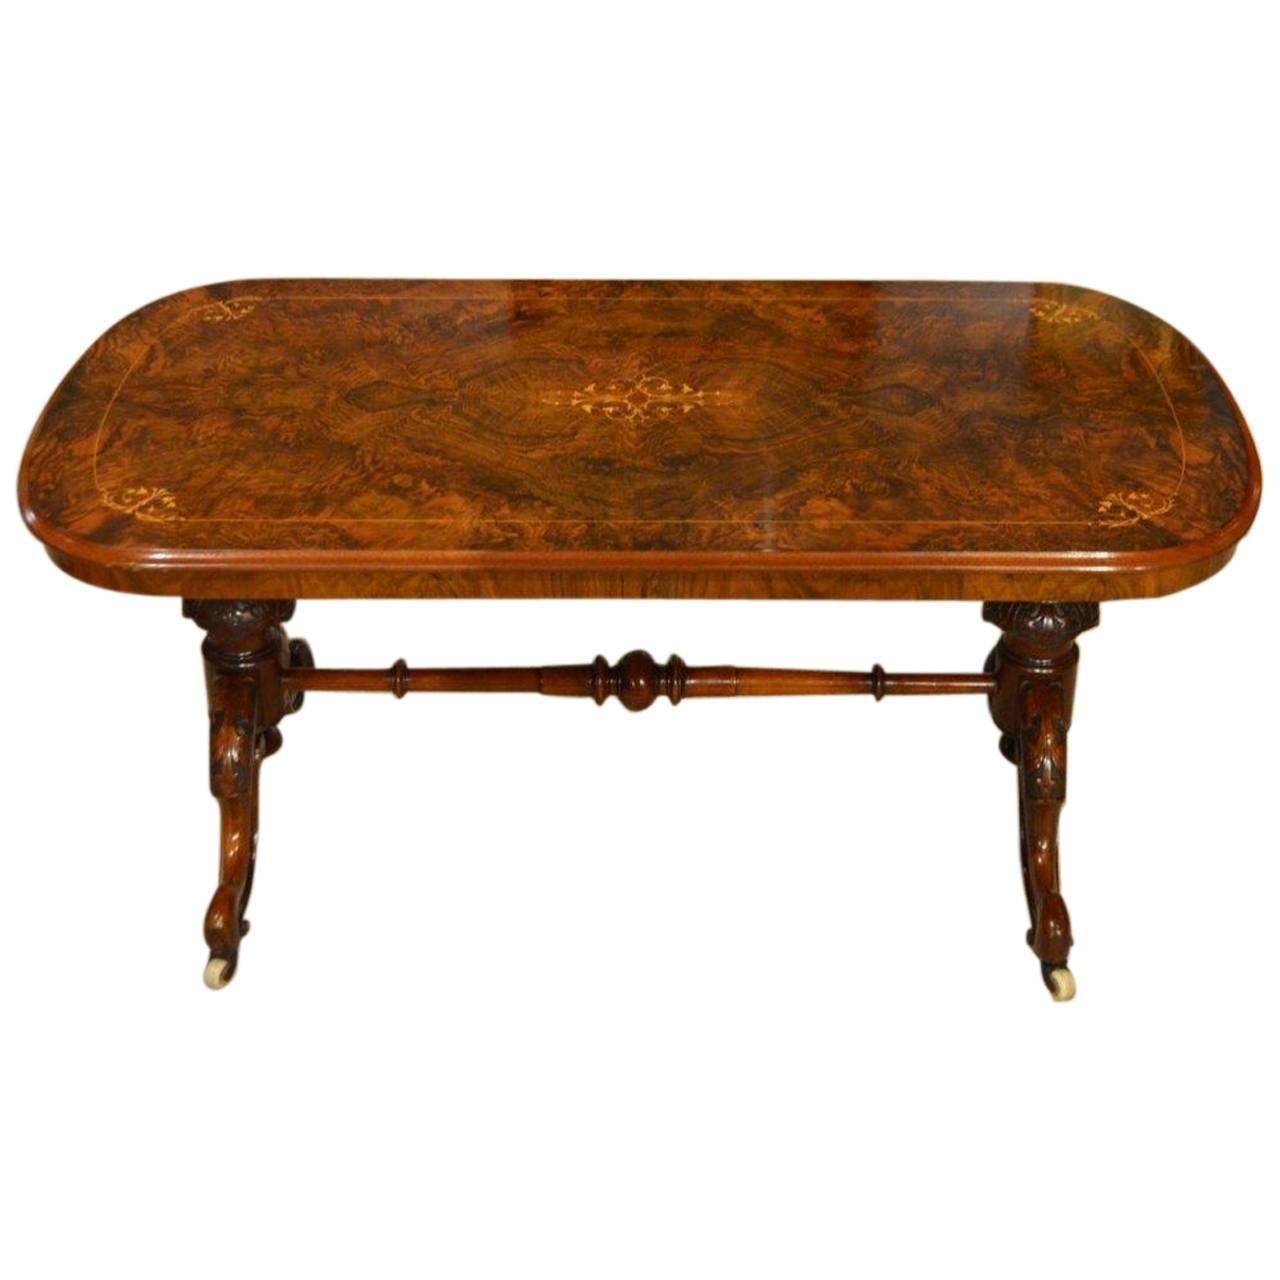 A Burr Walnut And Marquetry Inlaid Victorian Period Antique Coffee Table At 1stdibs